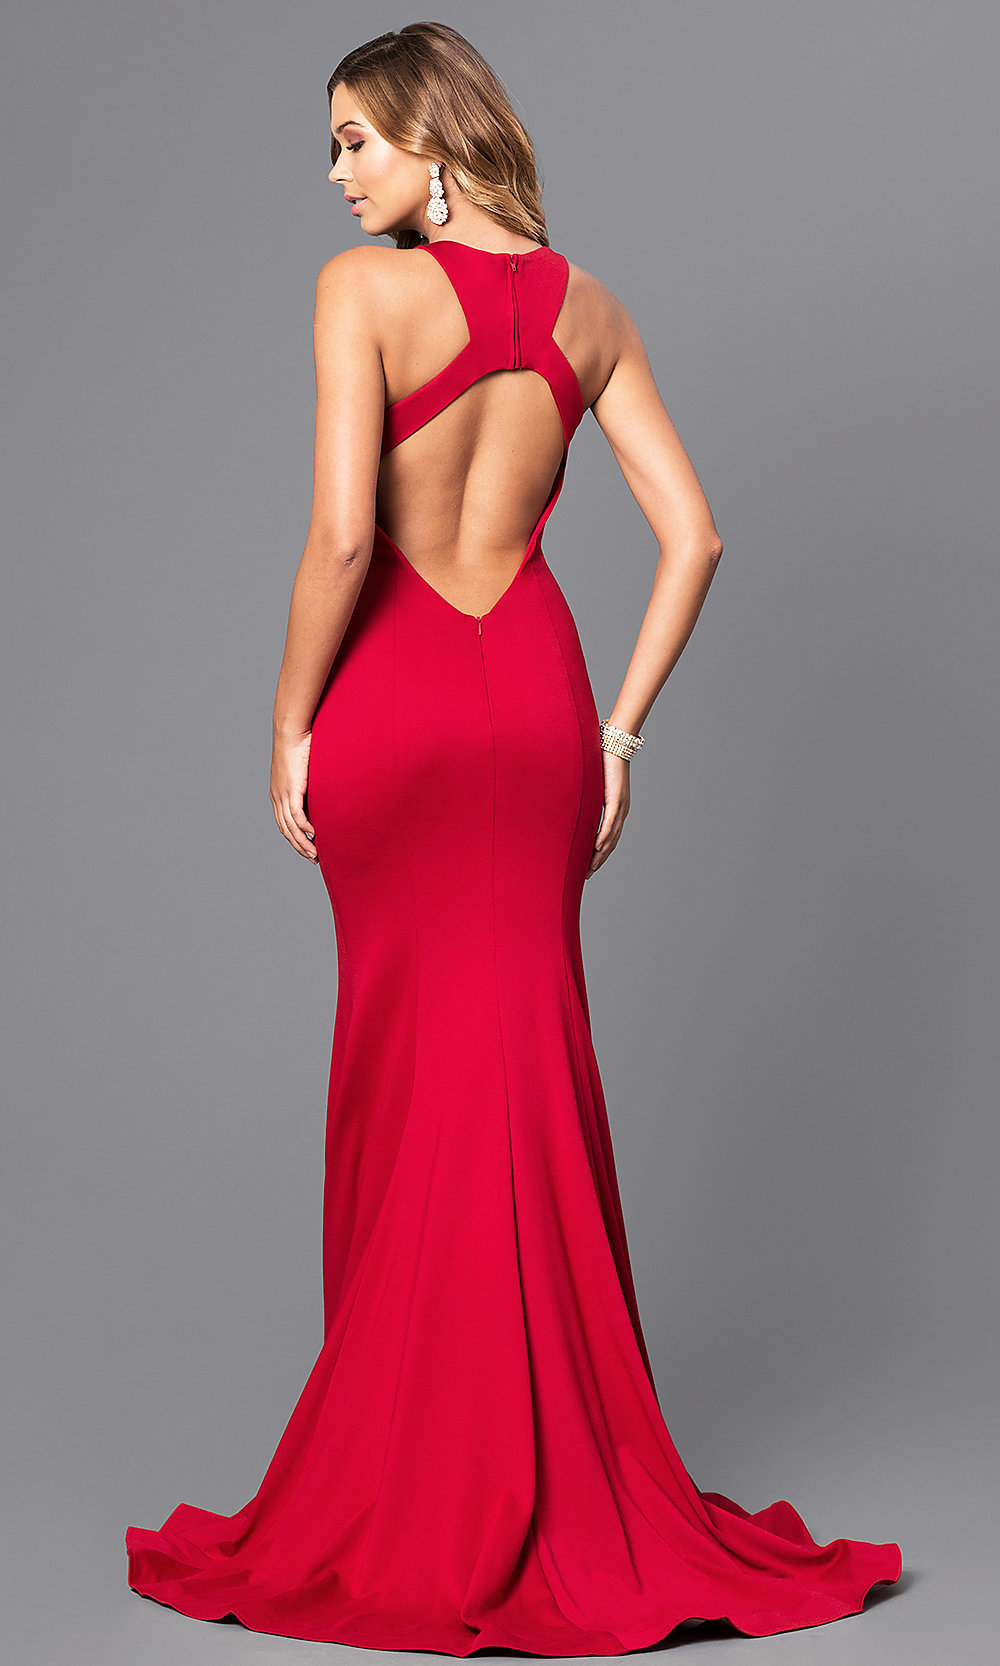 Celebrity Prom Dresses Sexy Evening Gowns Promgirl Zg 30816